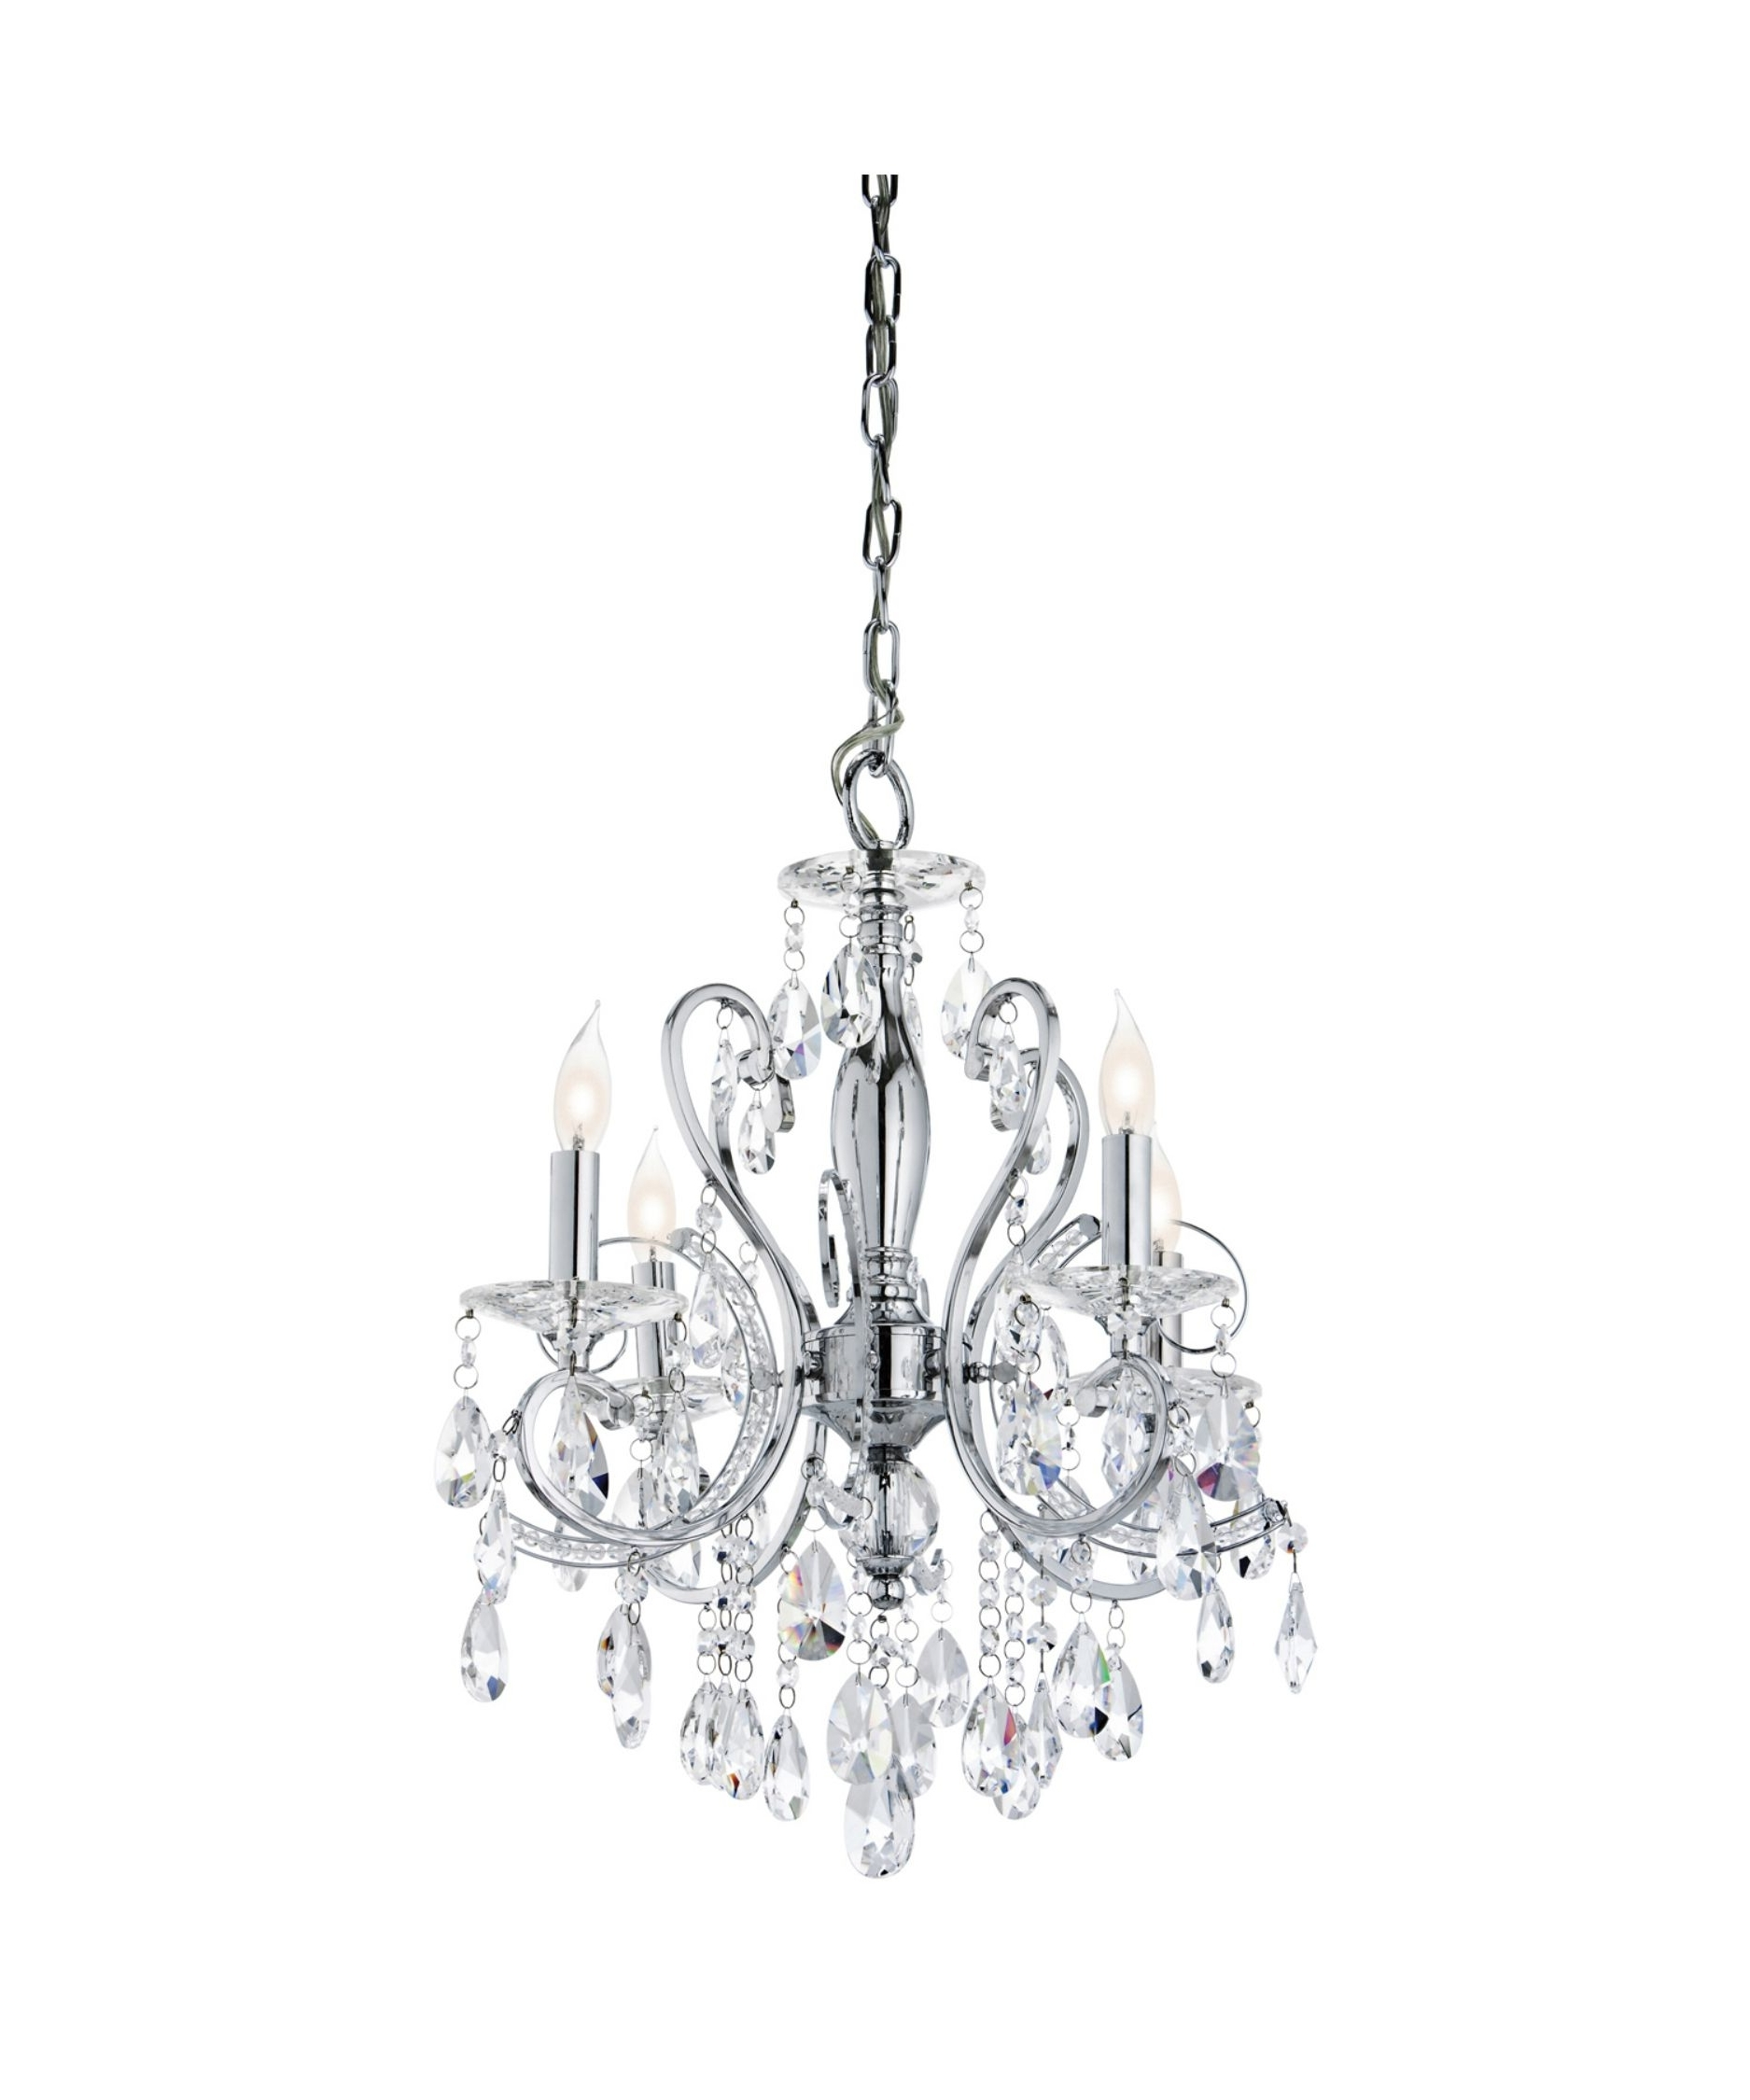 Famous Nice Mini Chandelier For Bathroom #7 Mini Crystal Chandelier In Crystal Bathroom Chandelier (View 13 of 20)